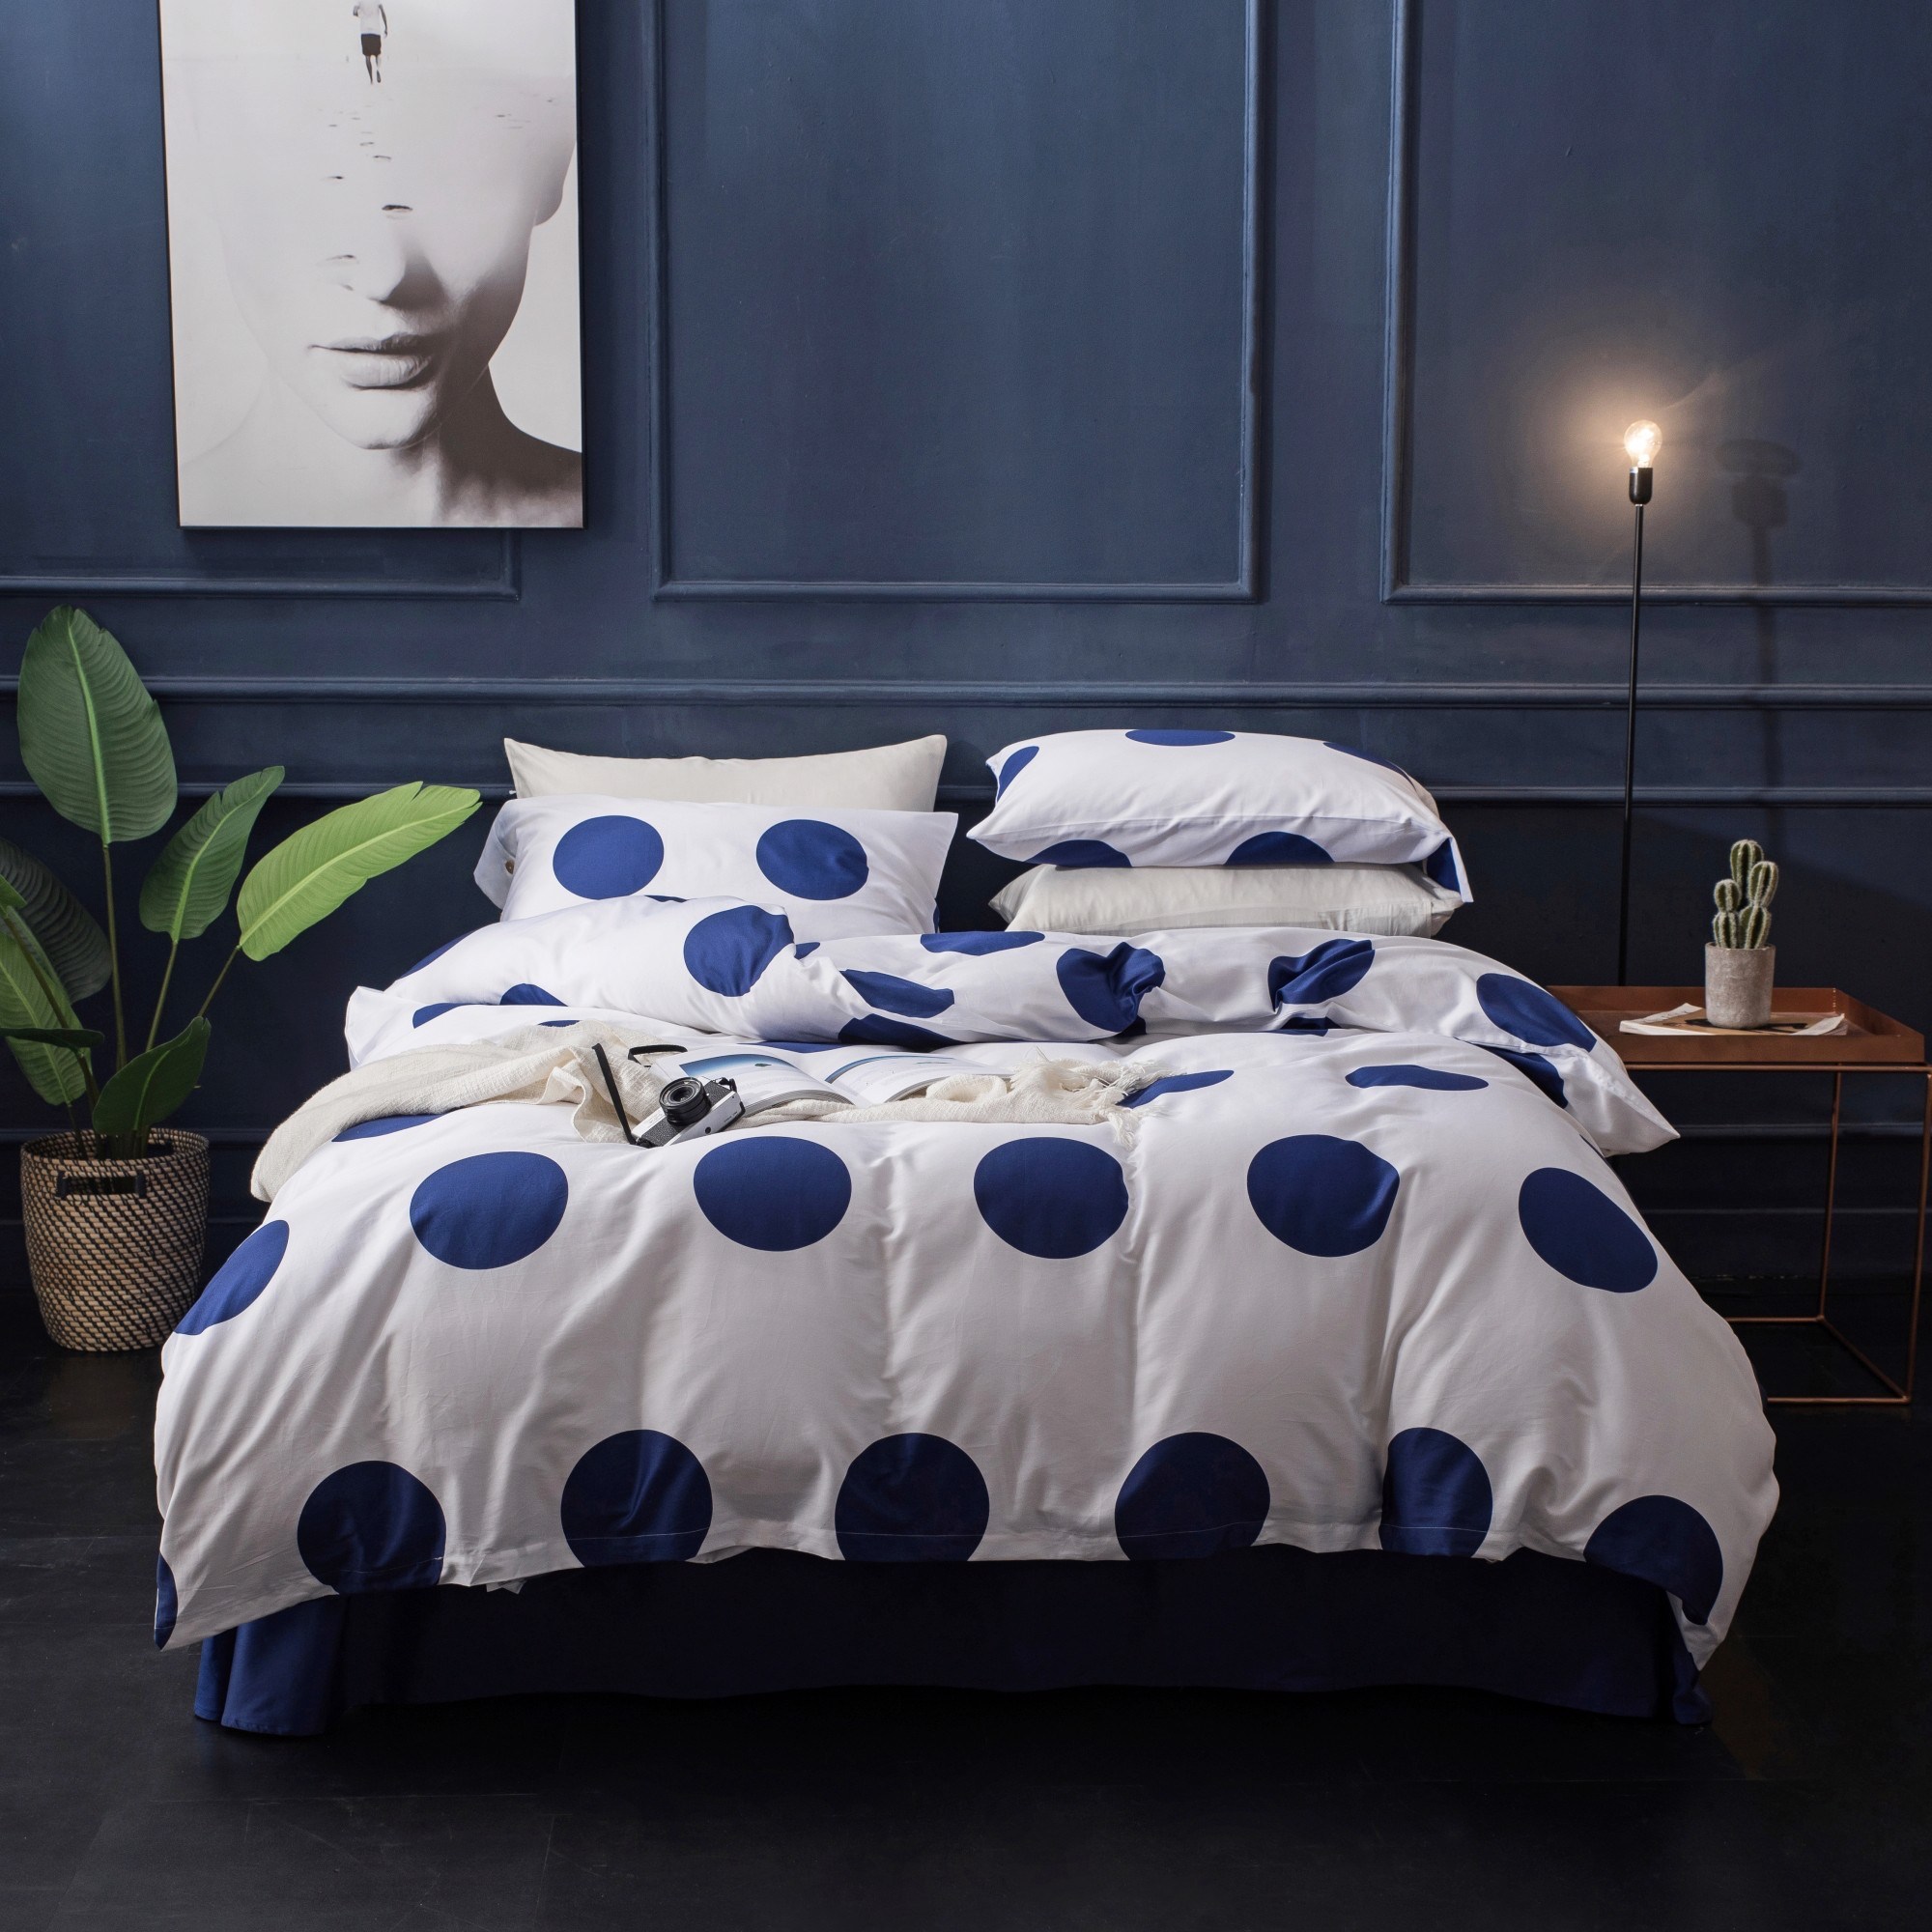 Best price 166 Navy poka dot